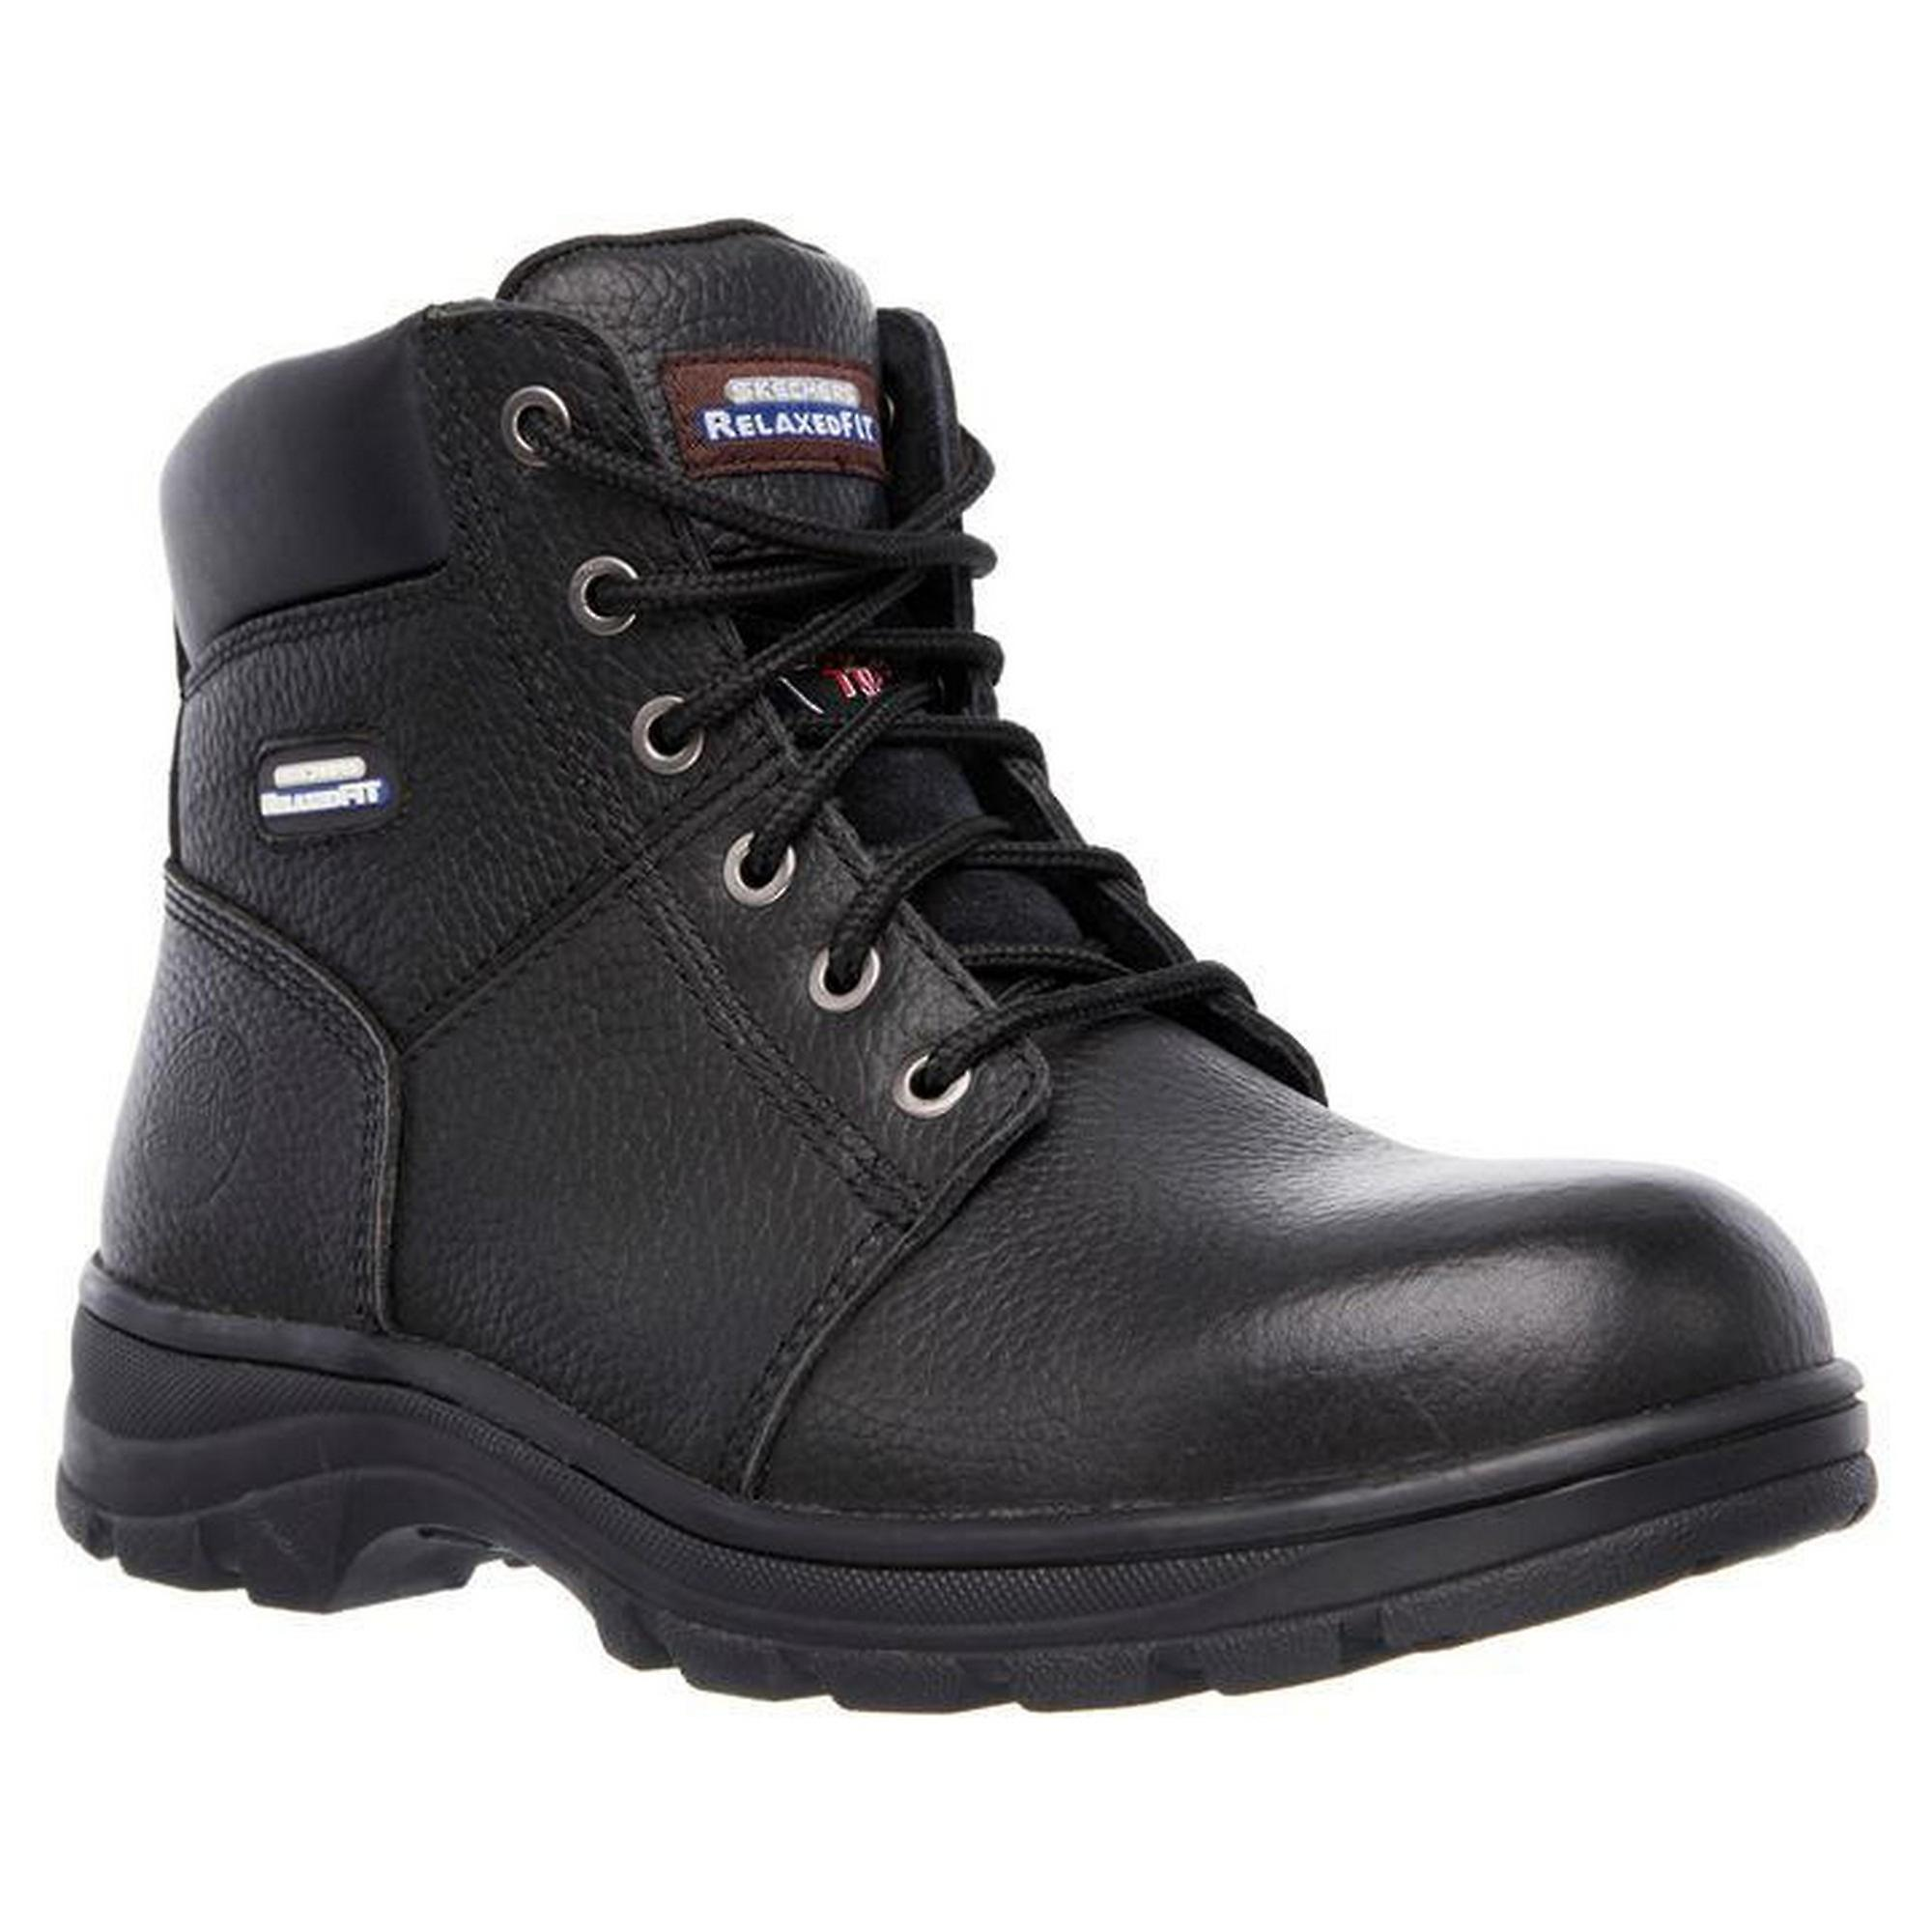 Skechers Mens Workshire Safety Boots